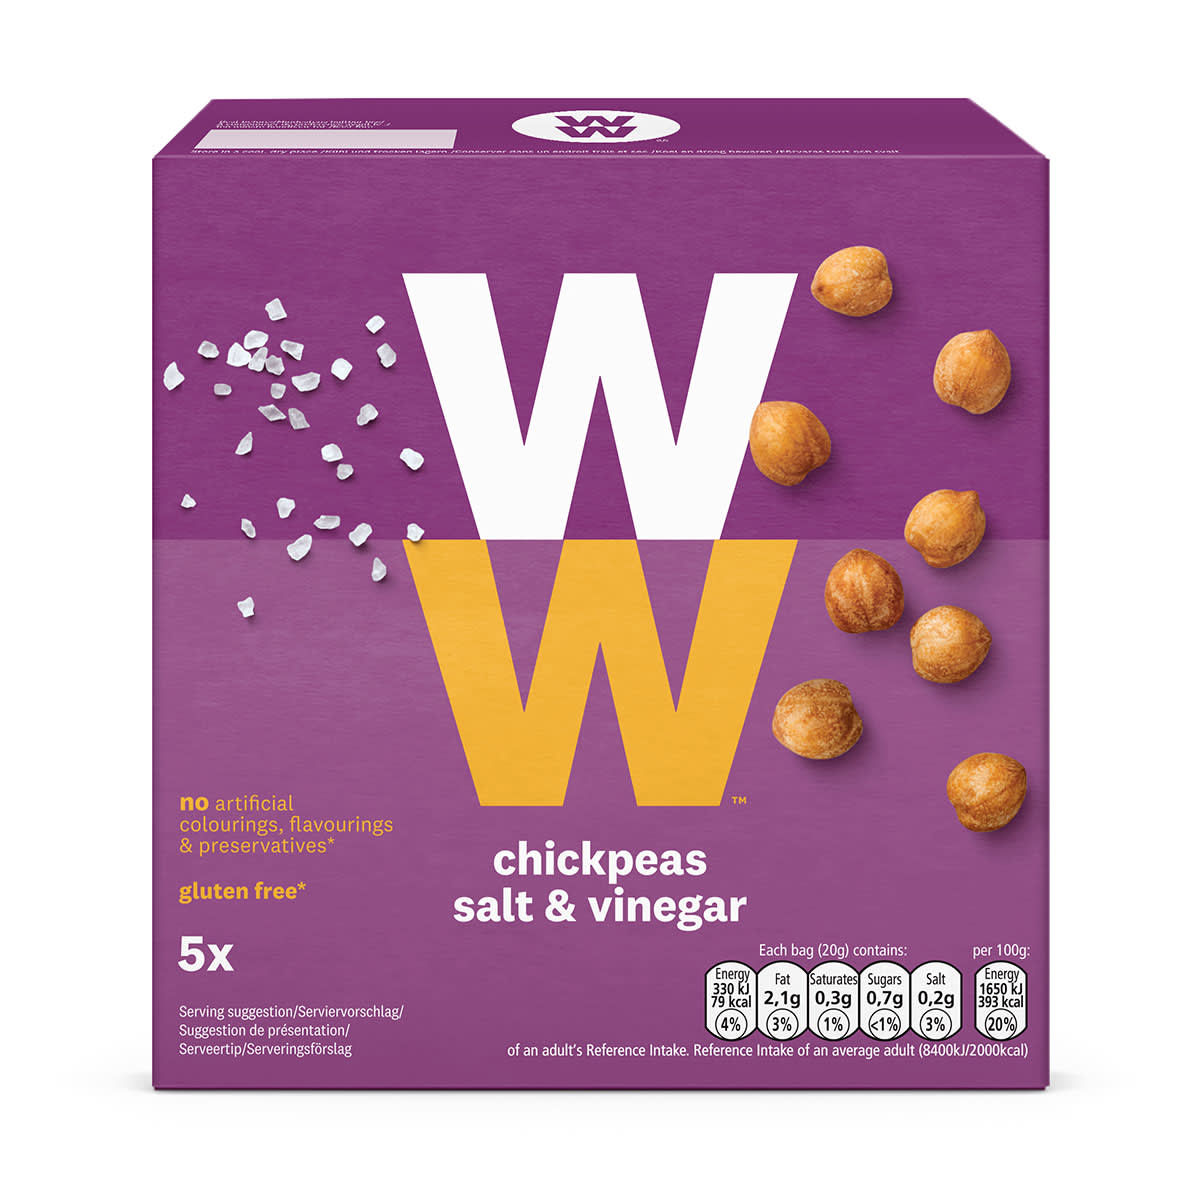 WW Salt and Vinegar Chickpeas, crunchy bite sized snack, high in protein, 2 SmartPoints values, suitable for vegans